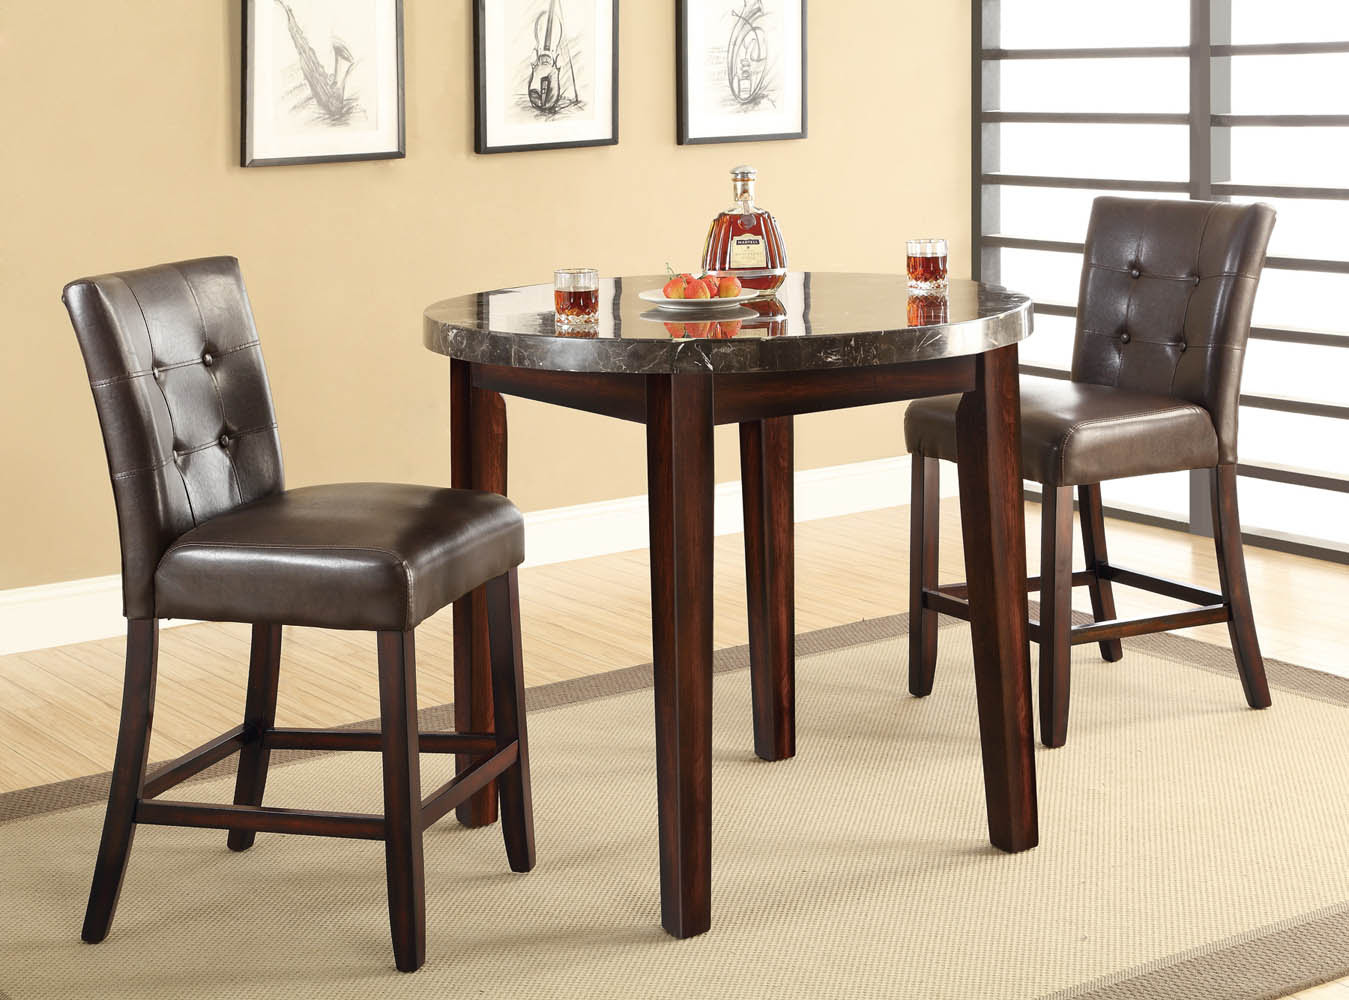 3 Piece Marble Top Dining Table Set